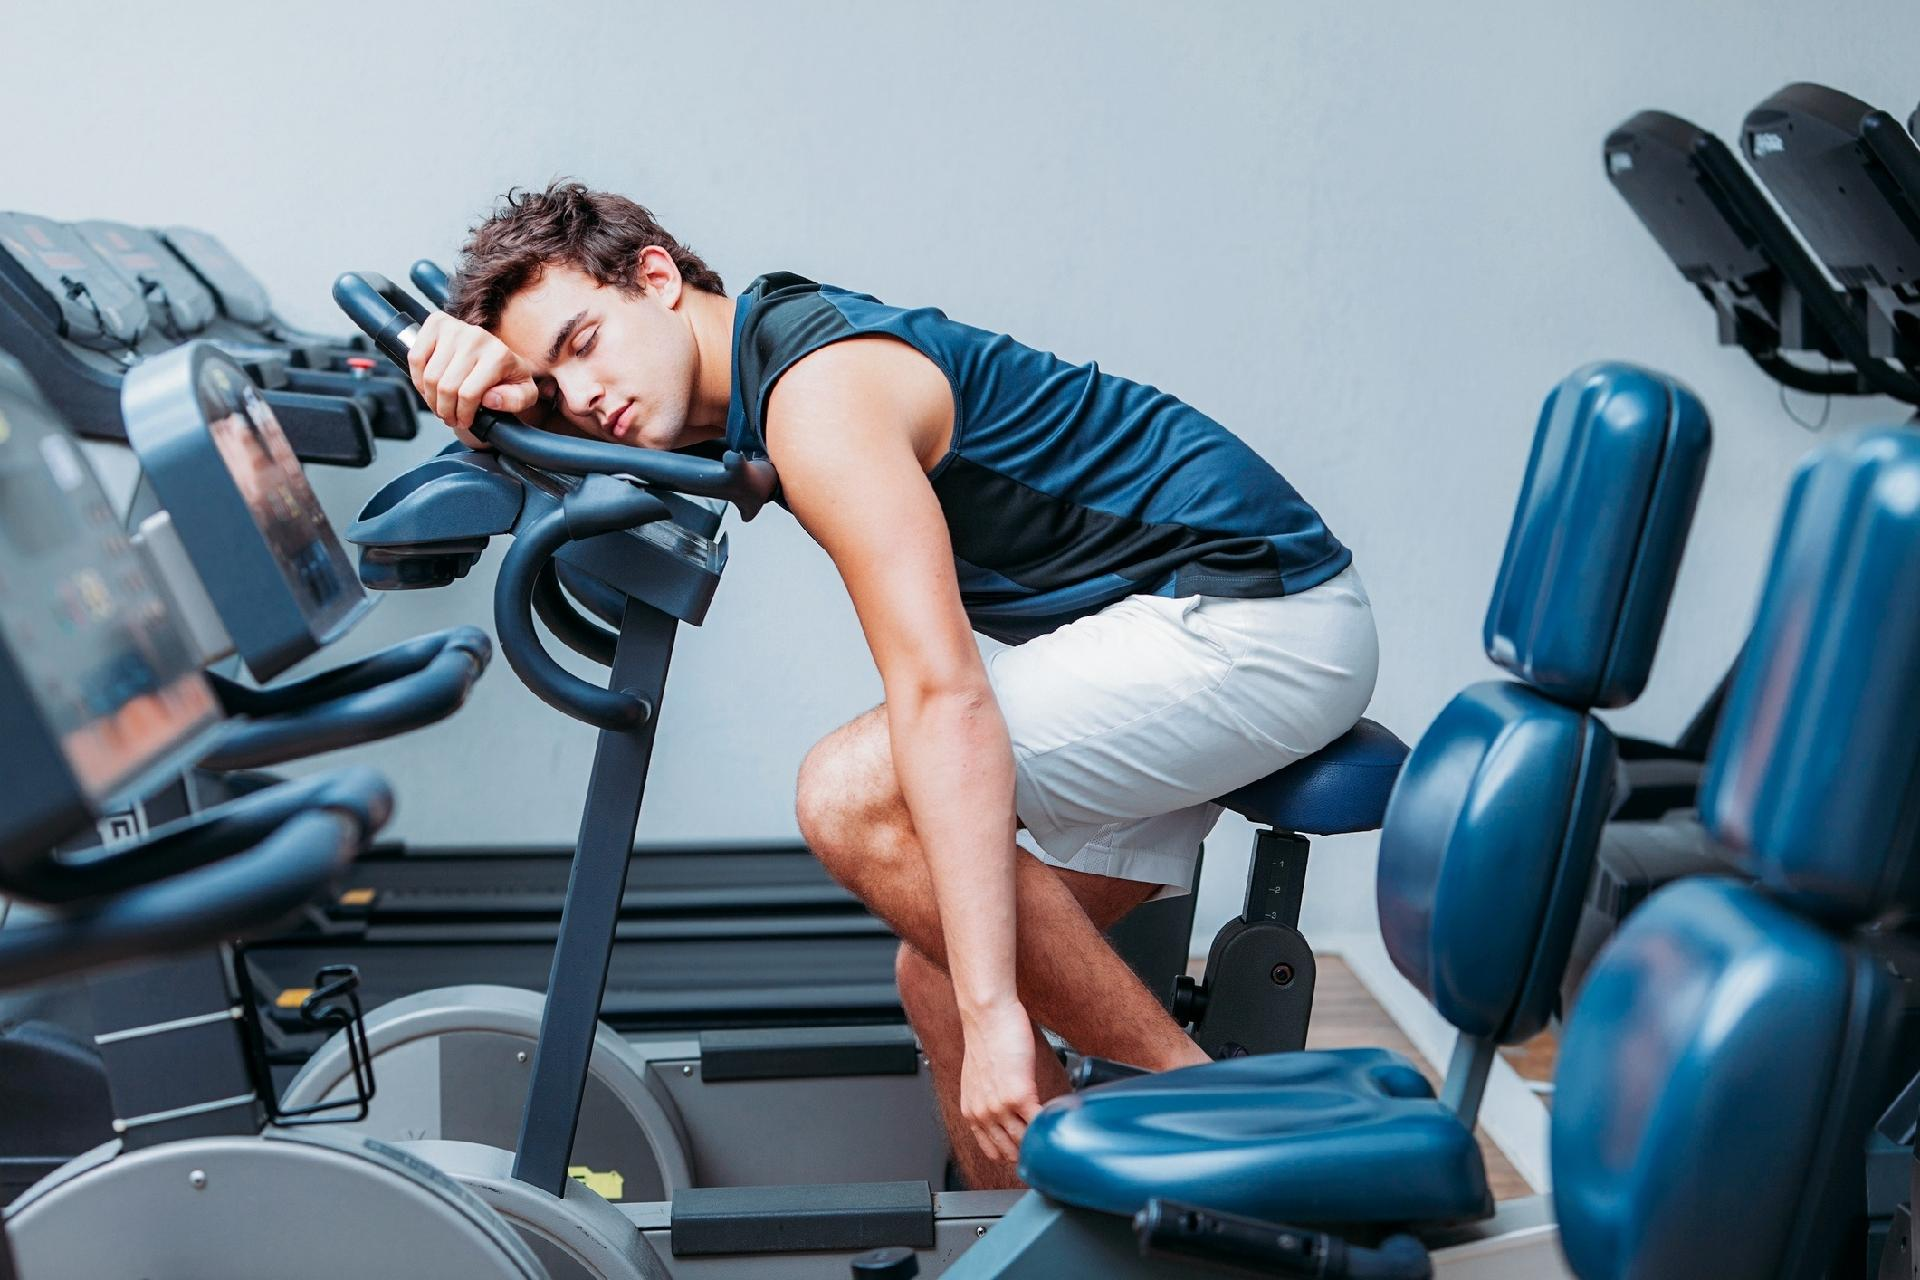 The science behind why skipping the gym is totally ok (and how)